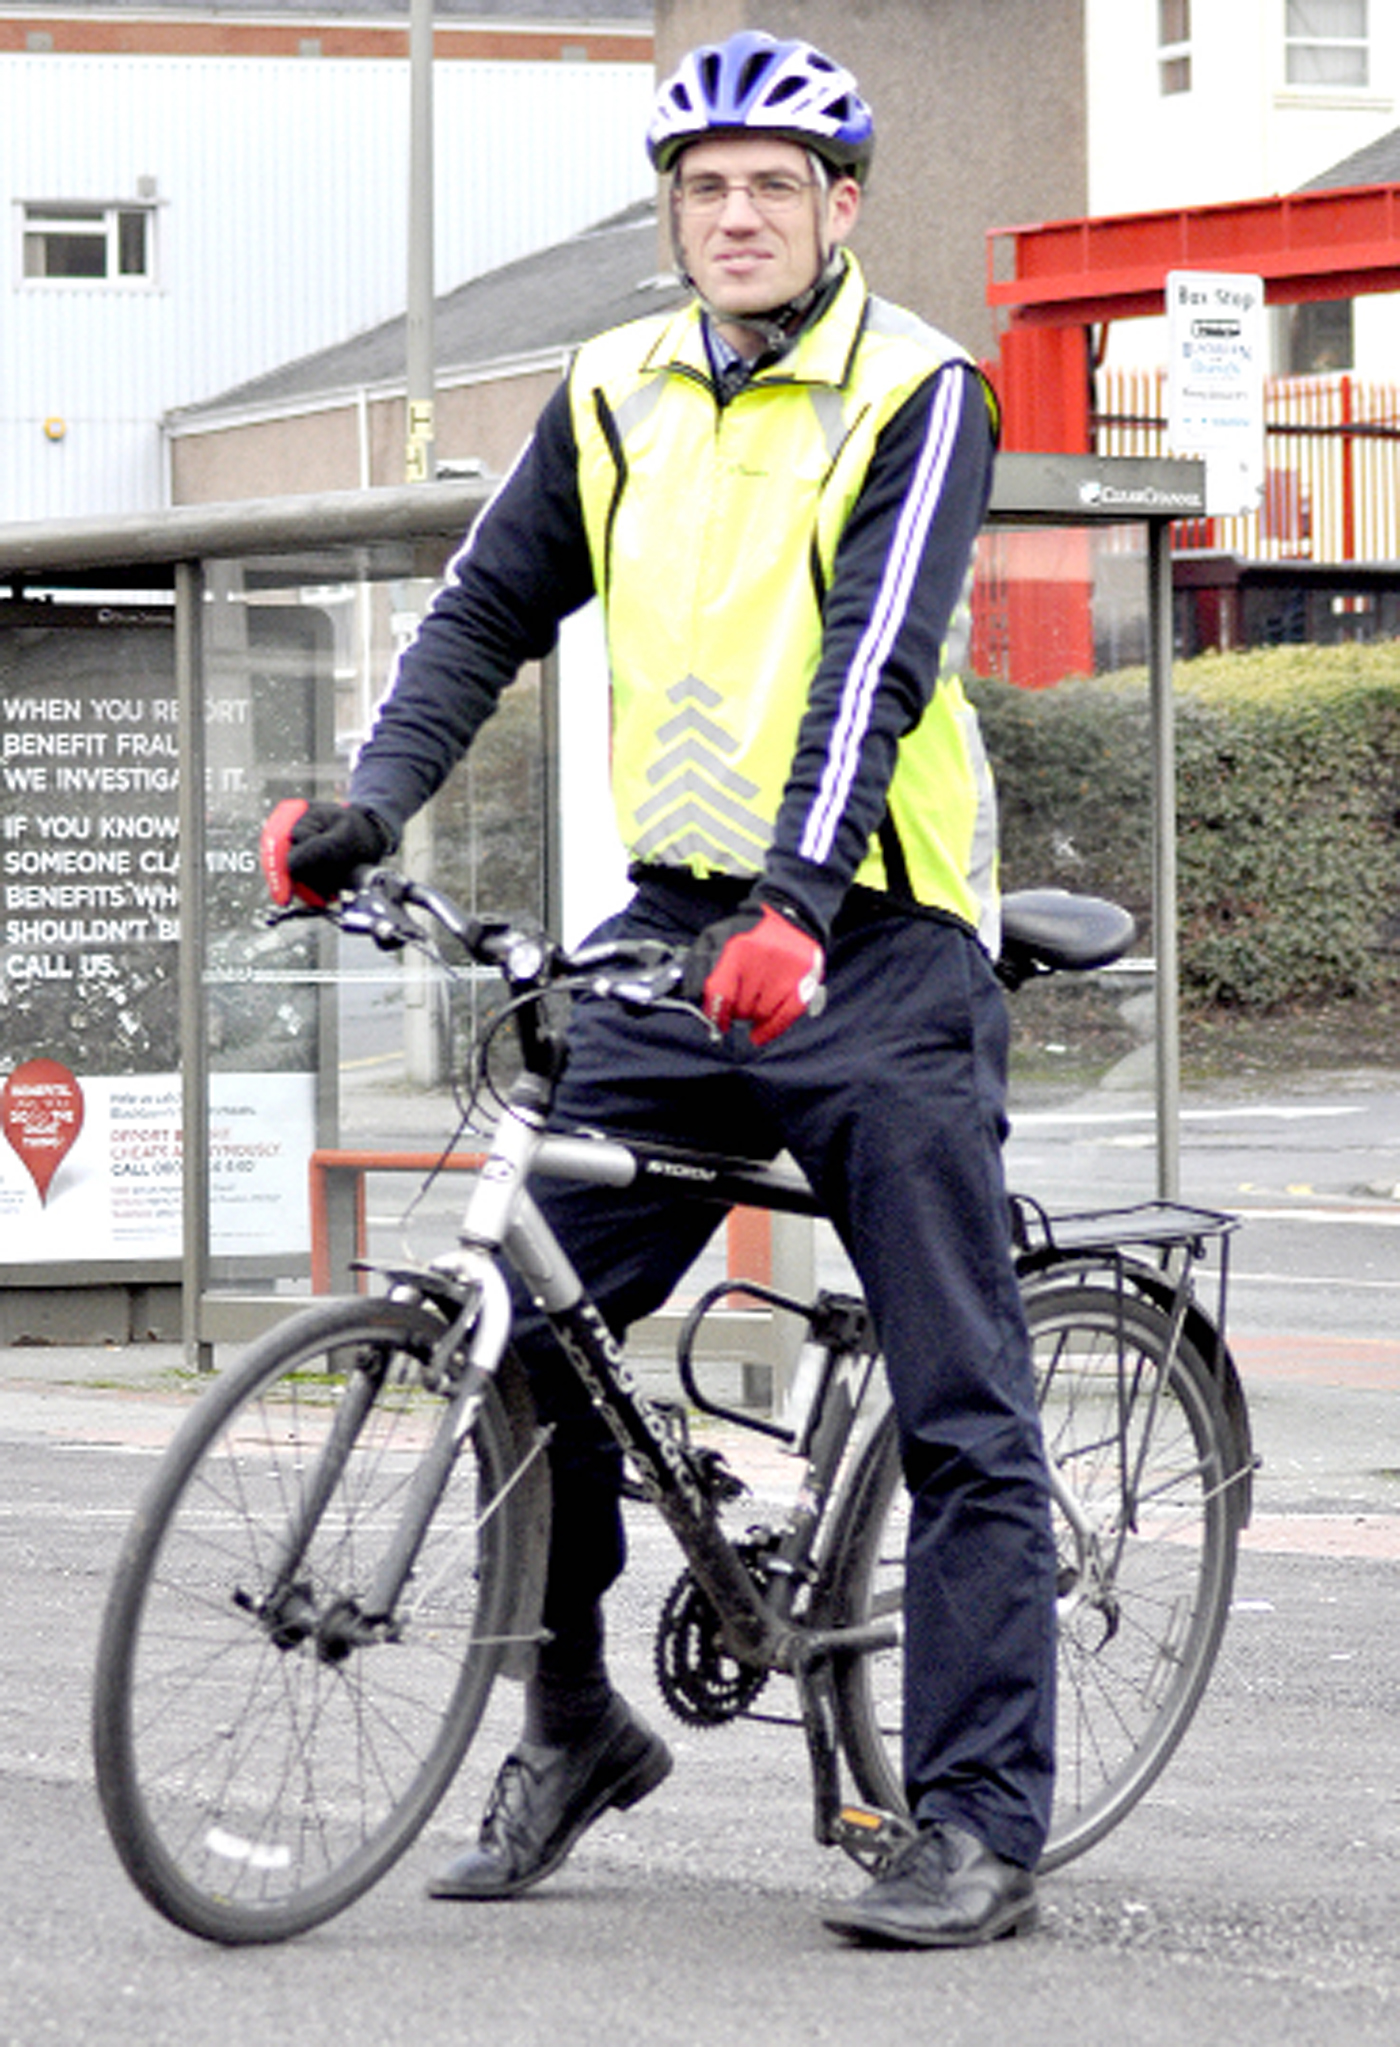 £8m to be invested in cycle routes across East Lancs, but is it enough?